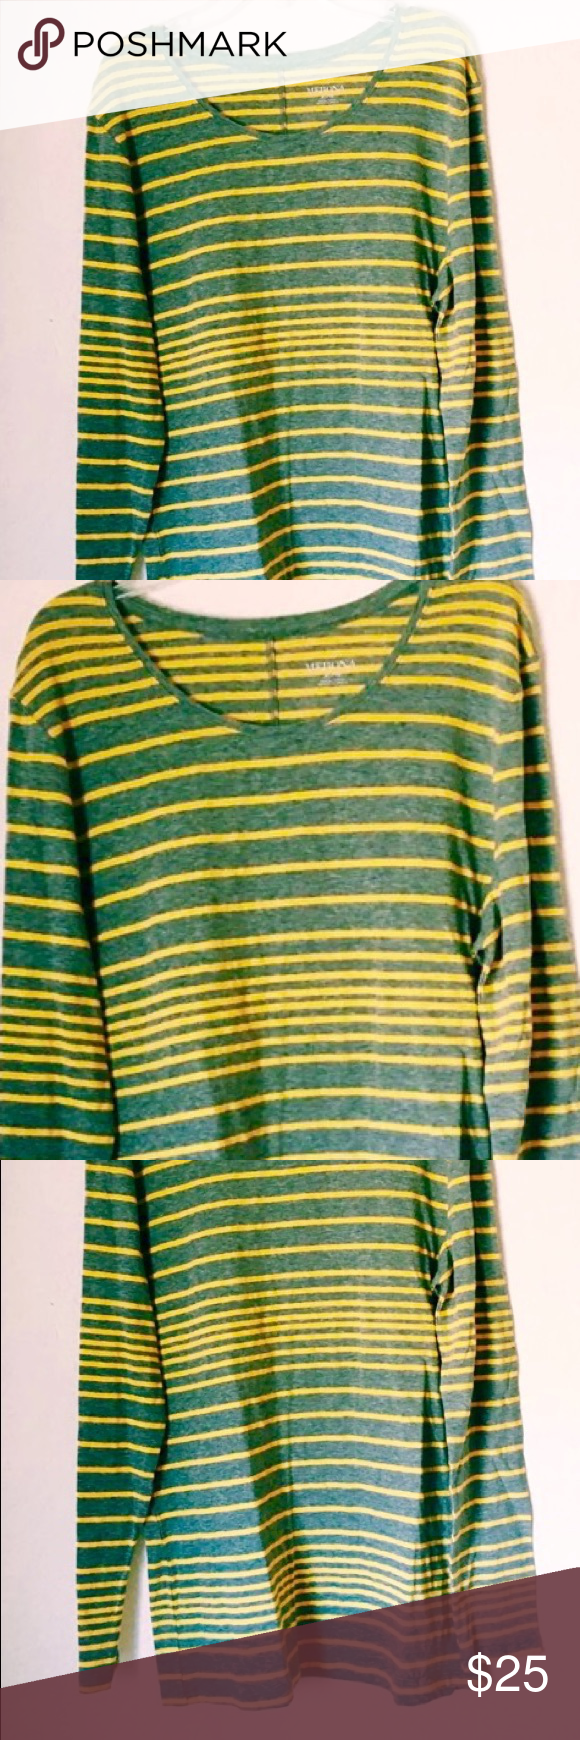 TARA TOP Green & Gold striped sweater Long sleeve green & yellow ...